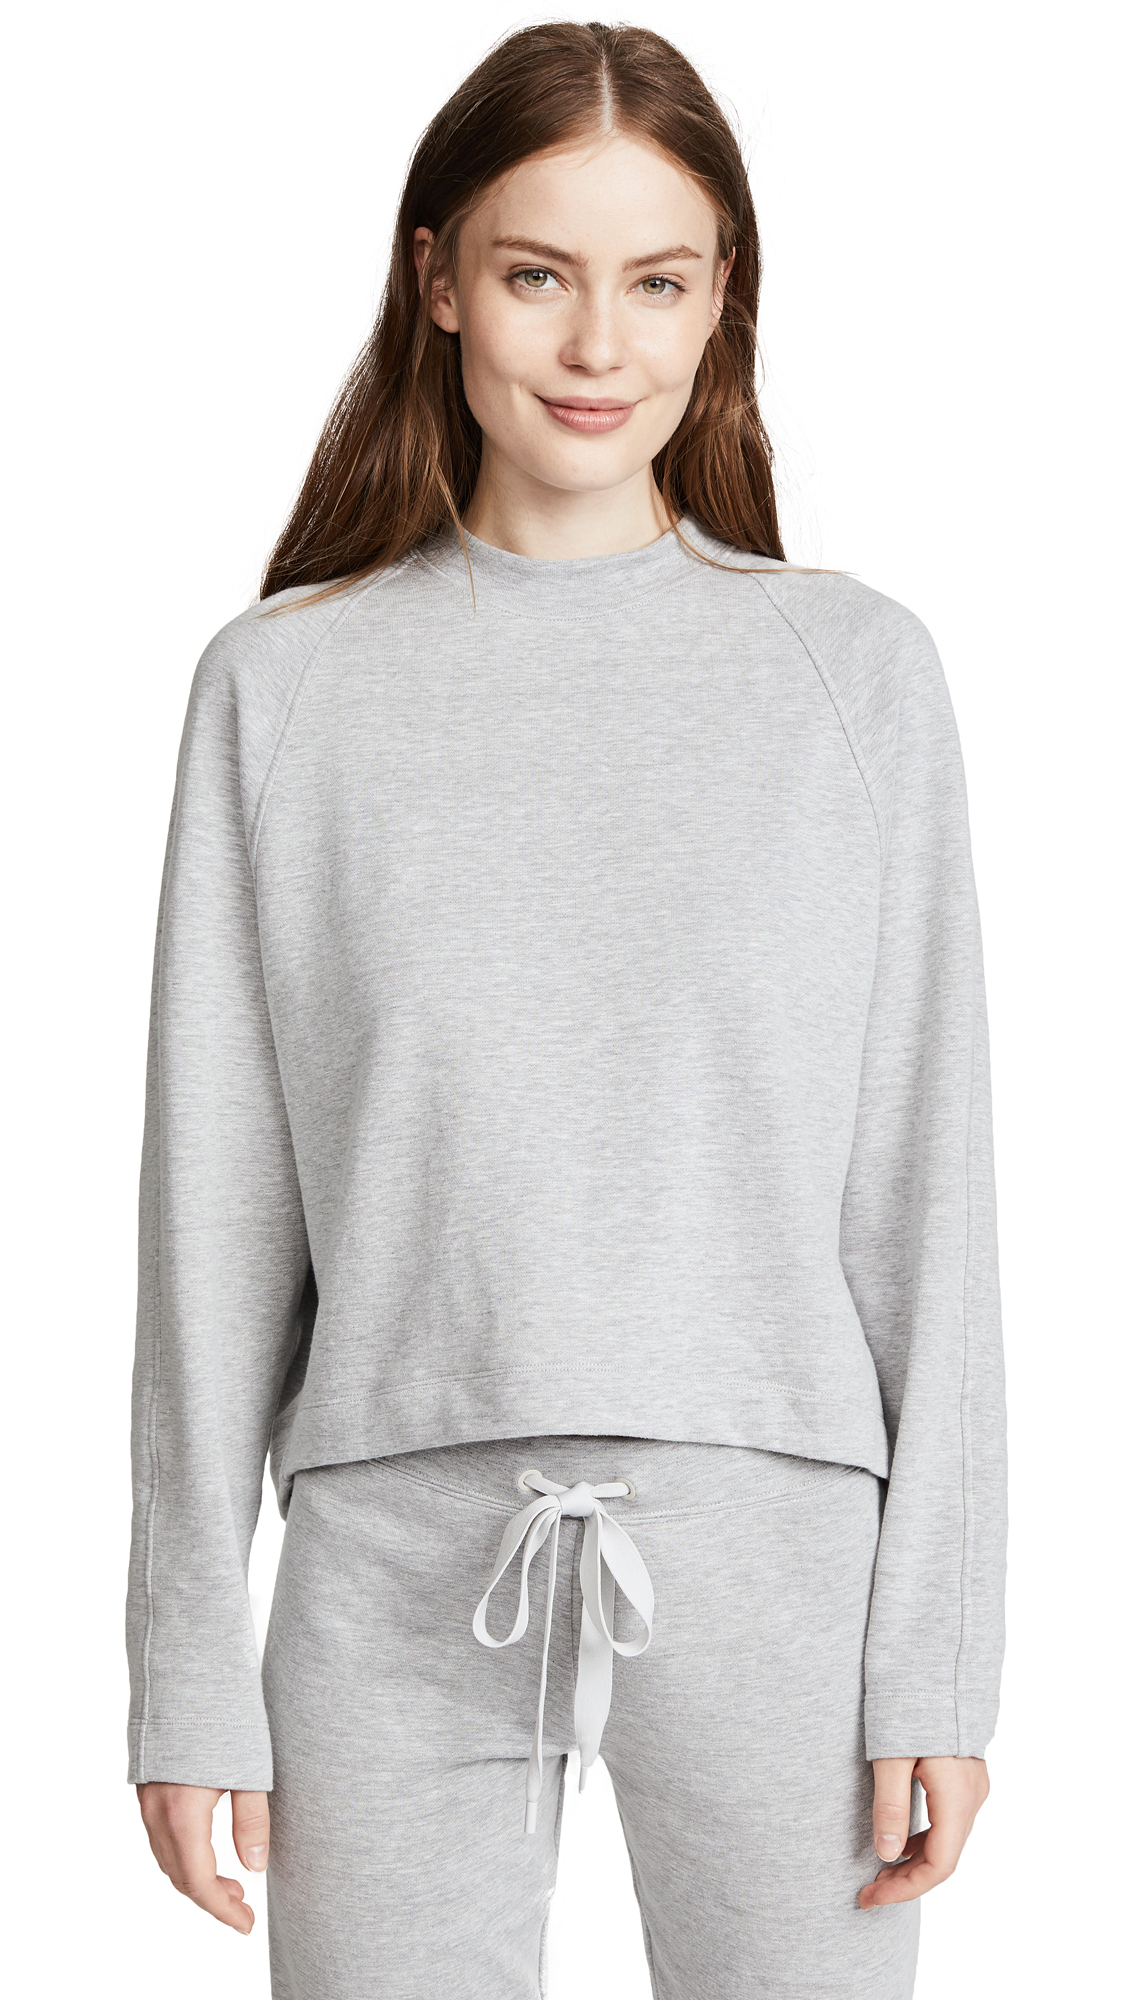 Theory Raglan Crew Pullover In Melange Grey